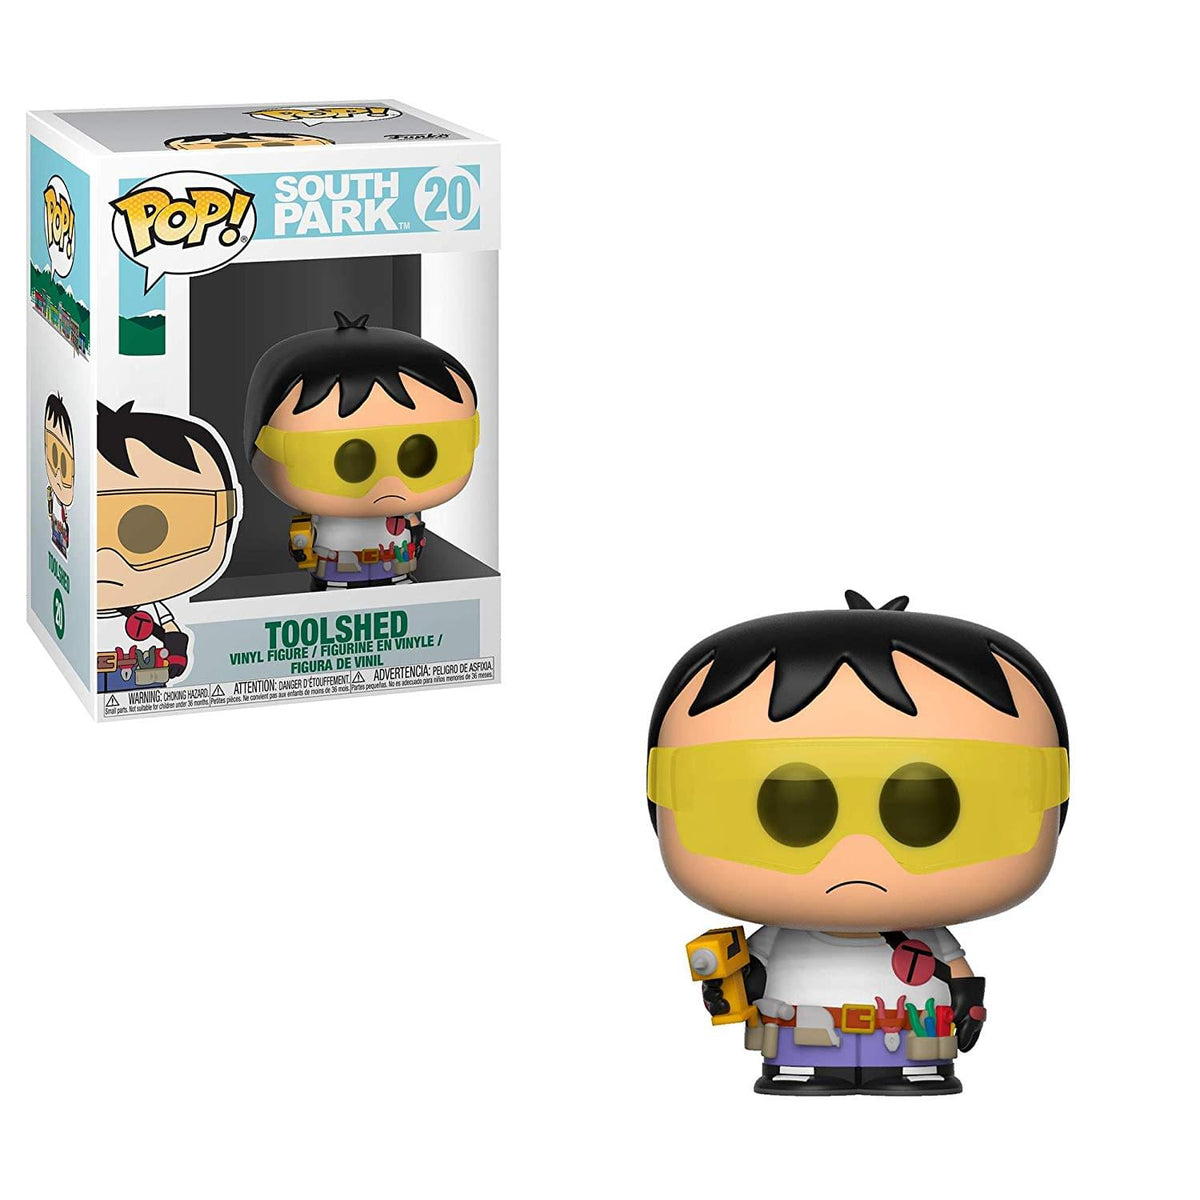 South Park Funko POP Vinyl Figure - Toolshed